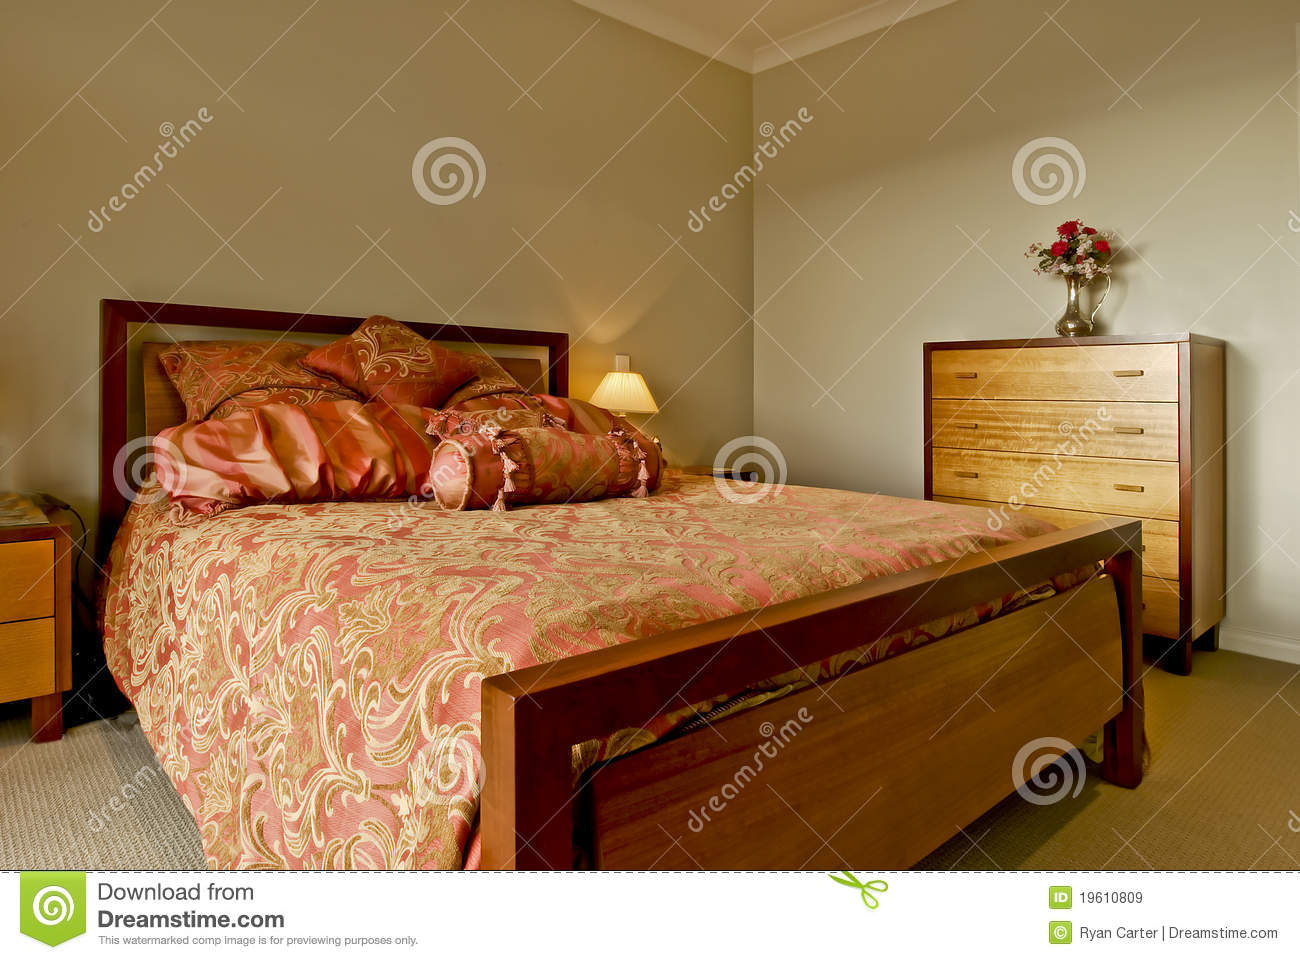 Bedroom royalty free stock images image 19610809 - Bedroom images ...